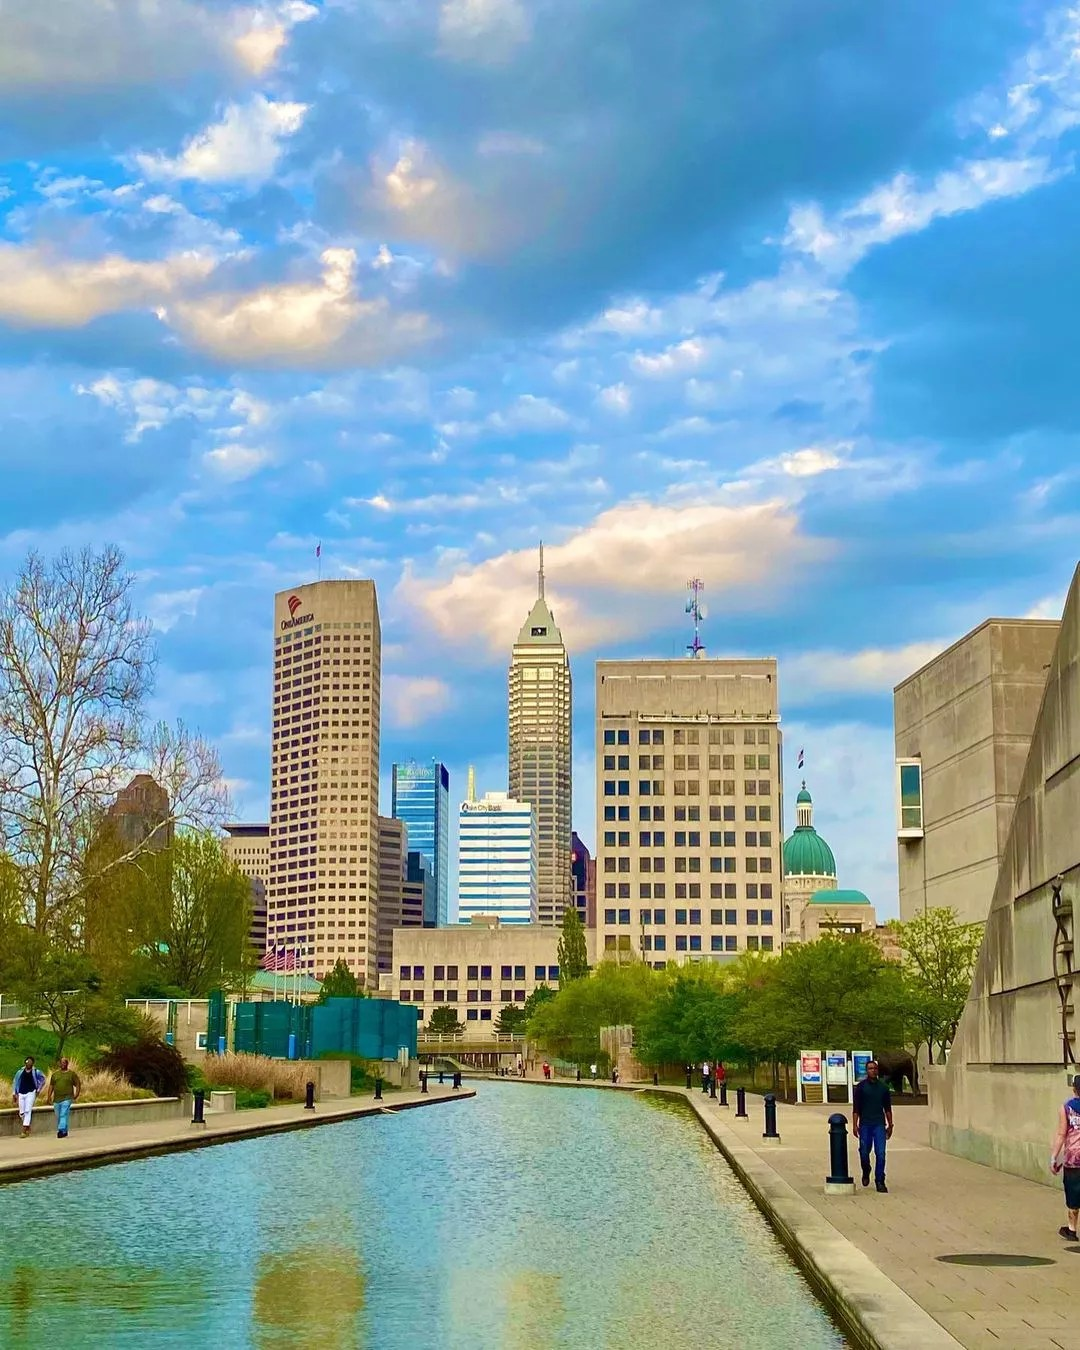 Skyline view of Indianapolis from the Downtown Indy Canal. Photo by Instagram User @andrew_j_spartan